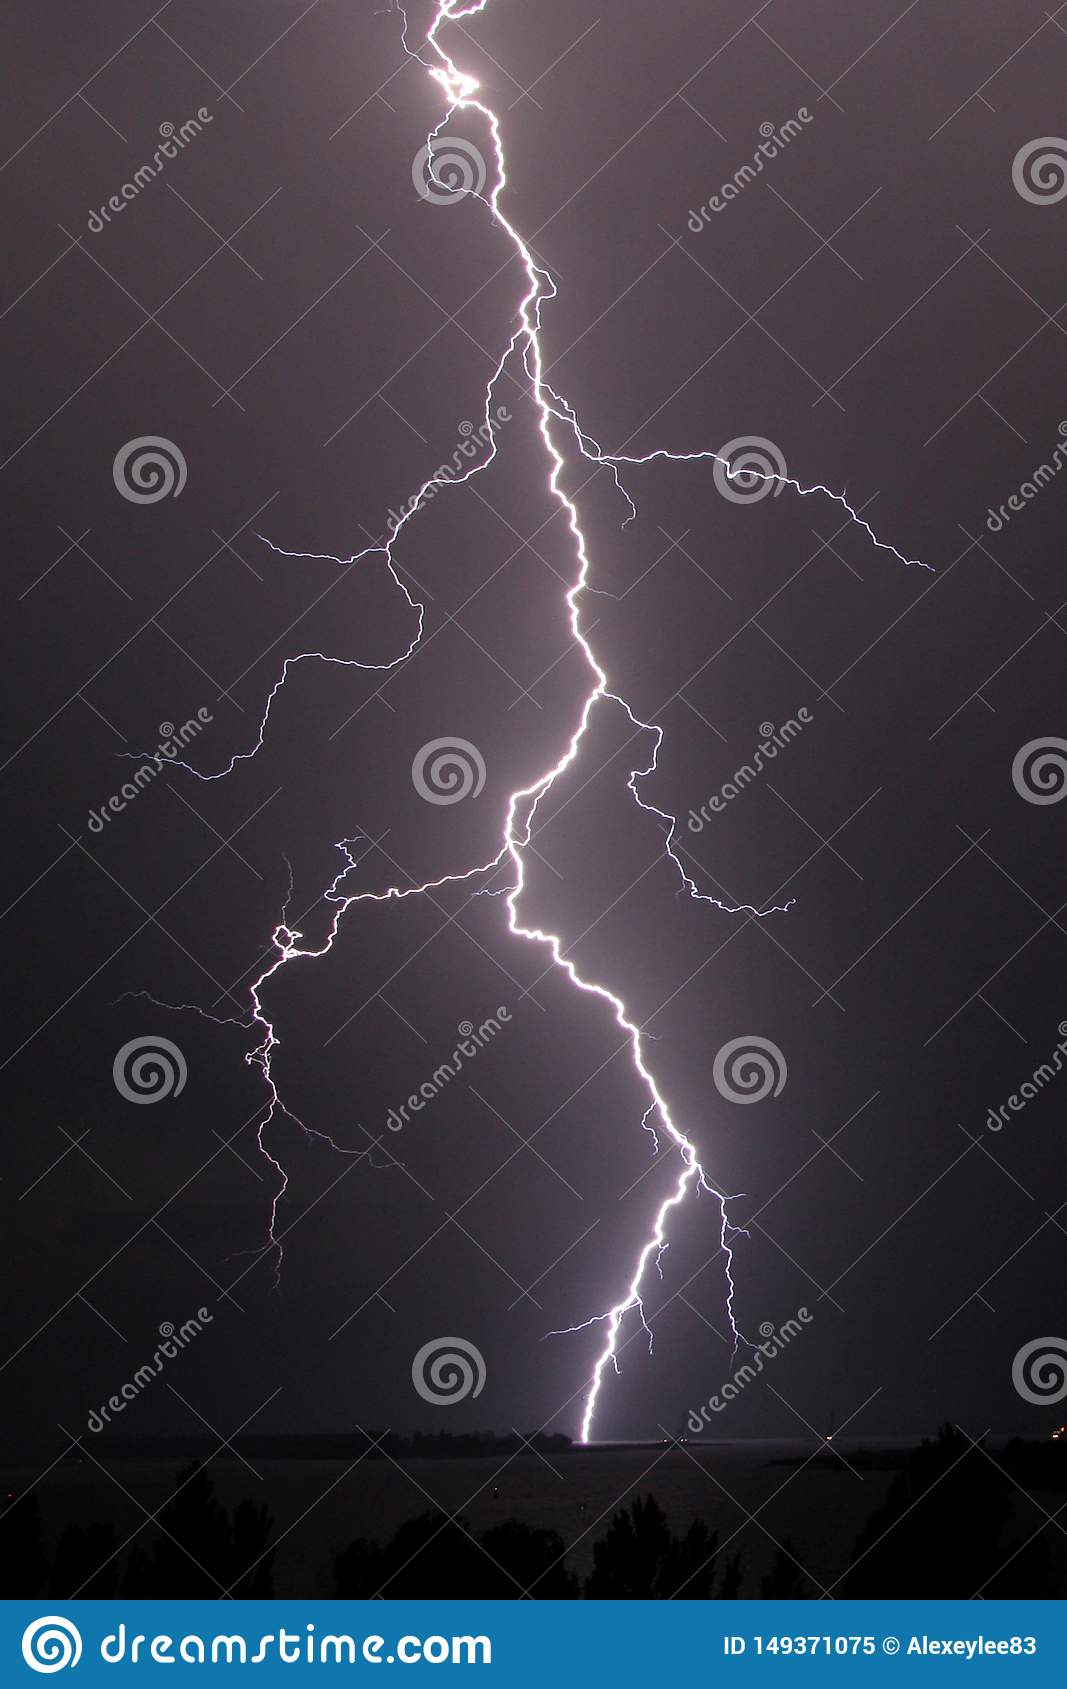 Thunderstorm and lightning strike over the river at night